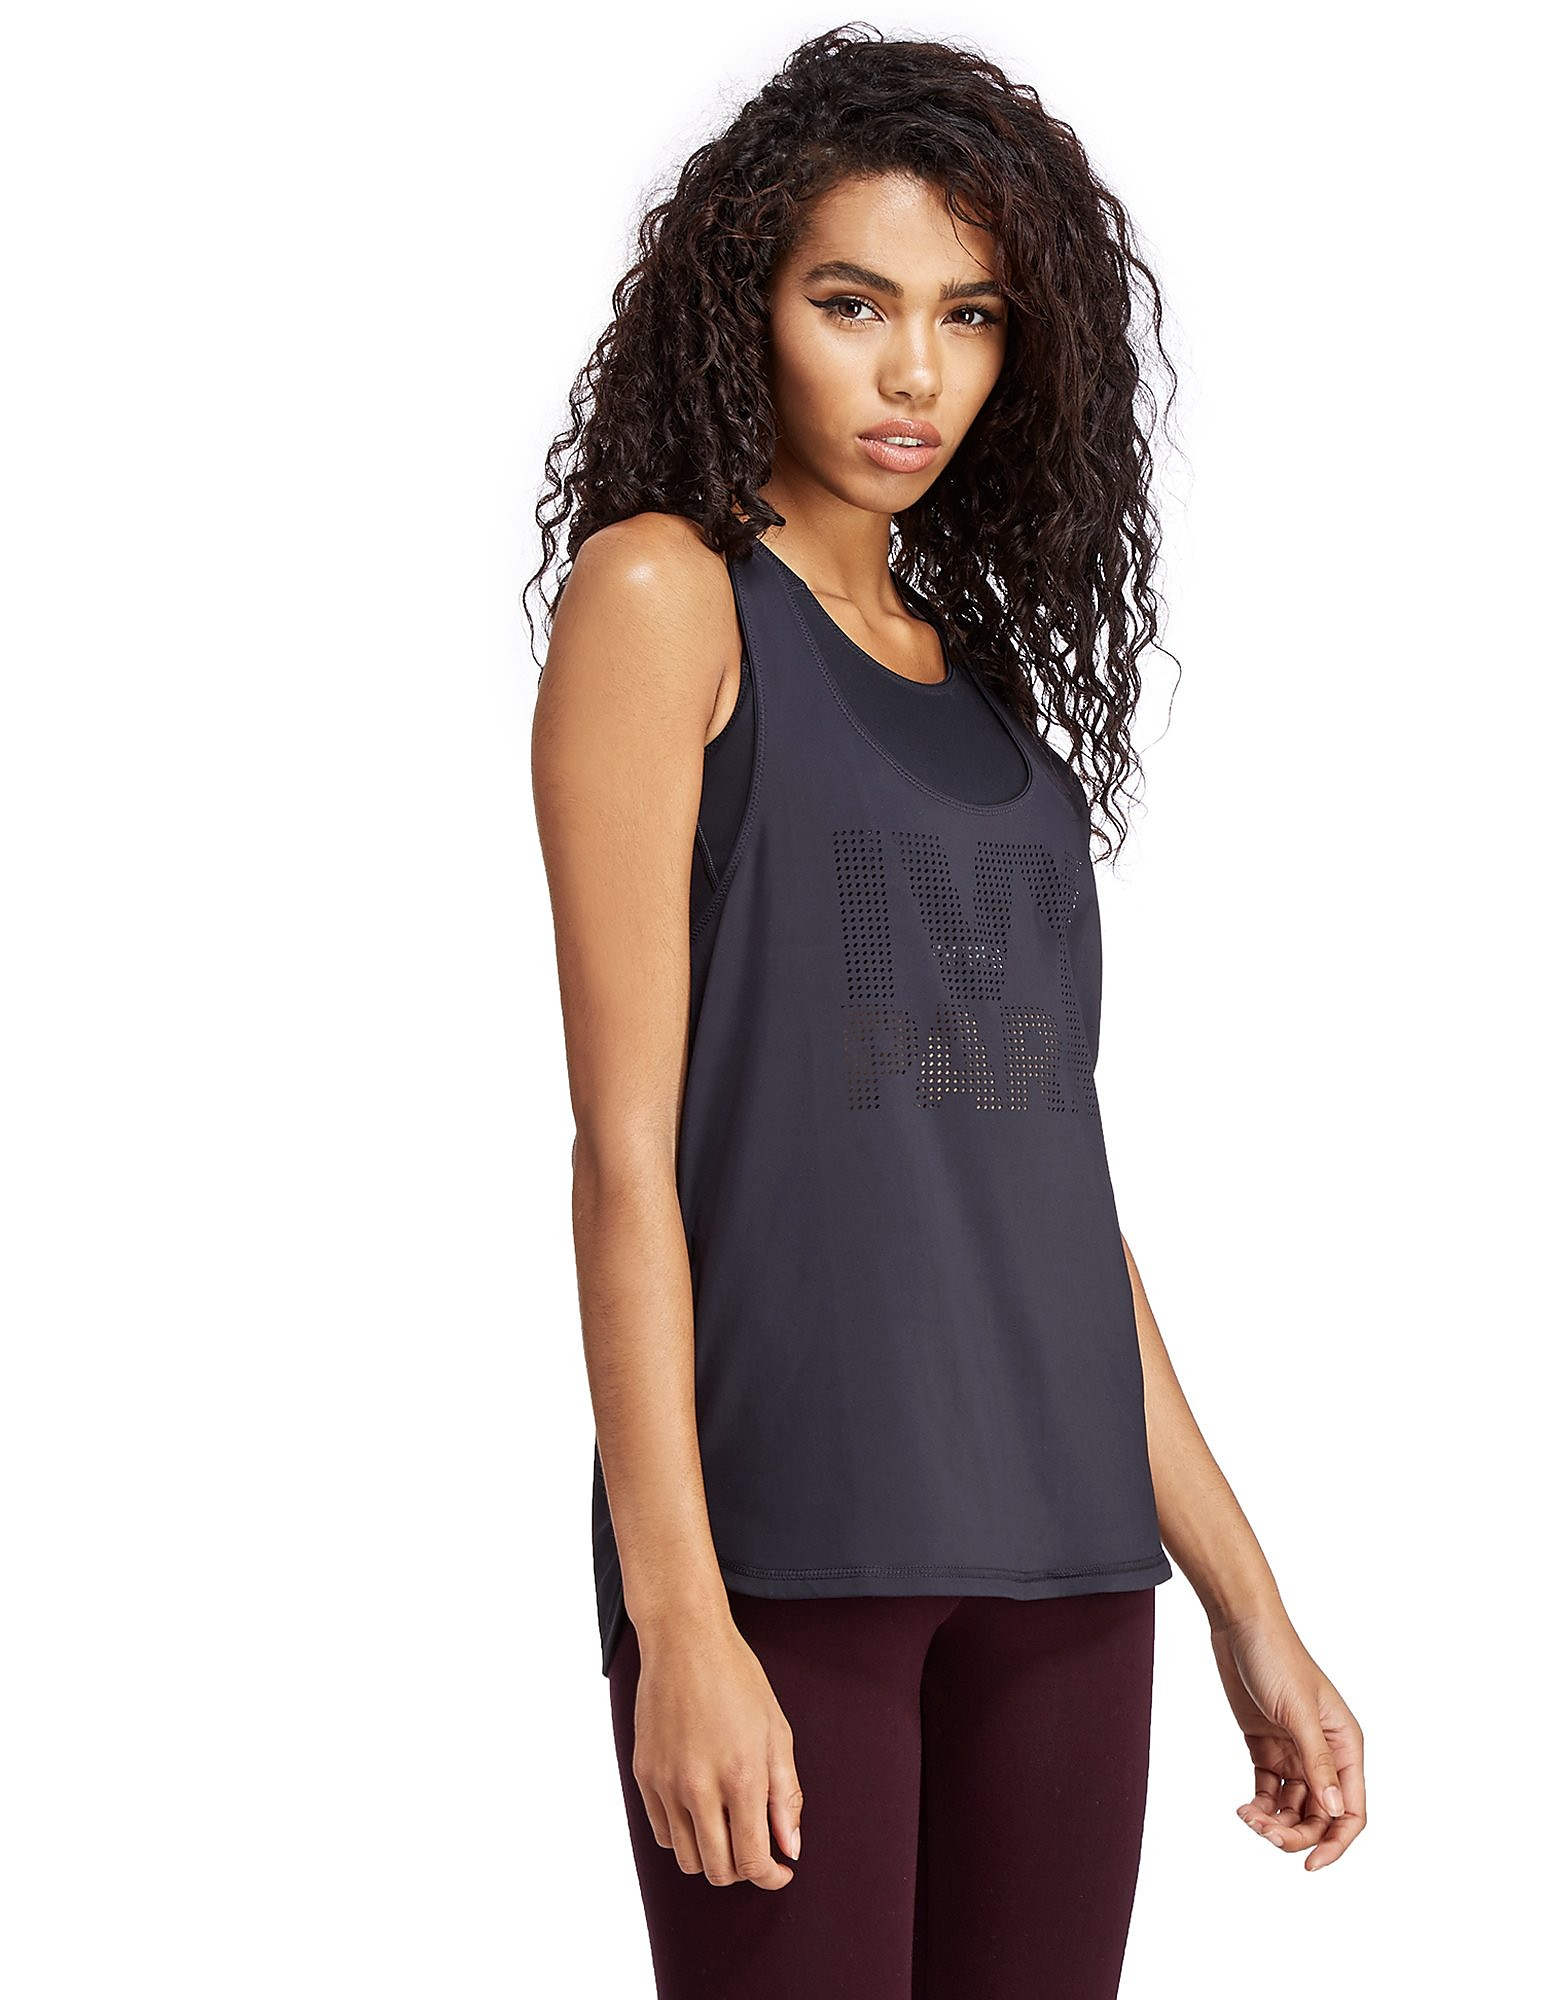 IVY PARK Laser Cut Tank Top